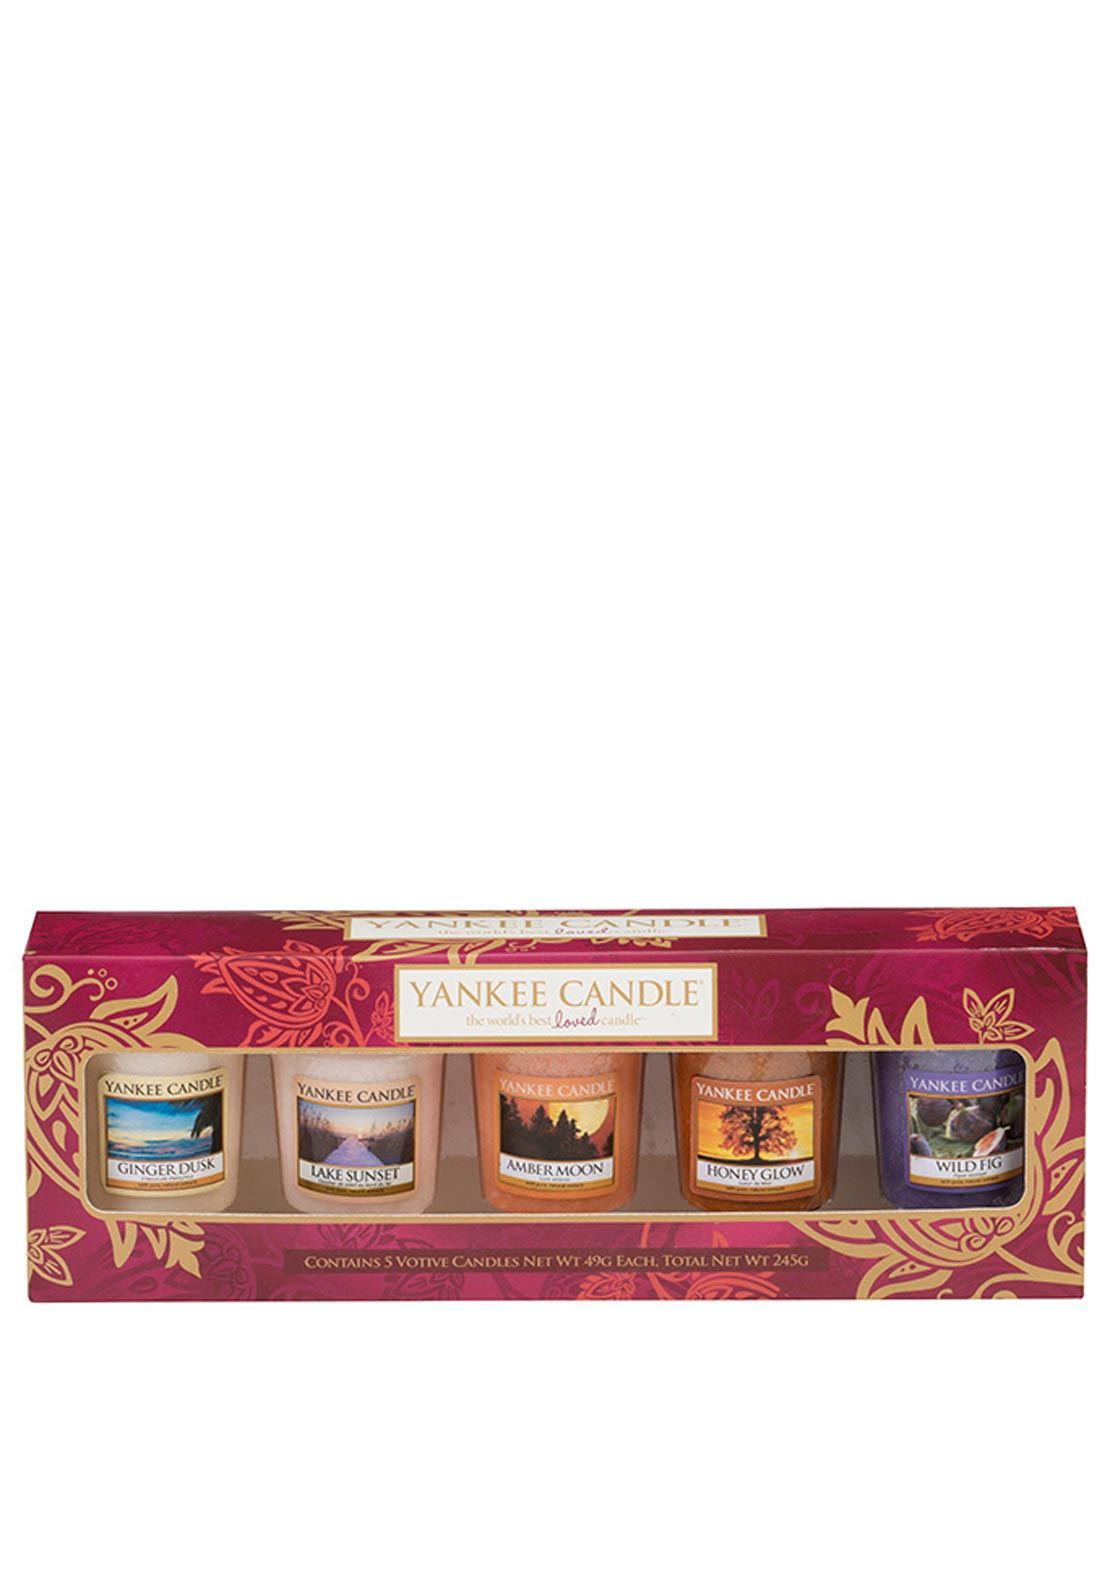 Yankee Candle 5 Votive Candles Gift Set